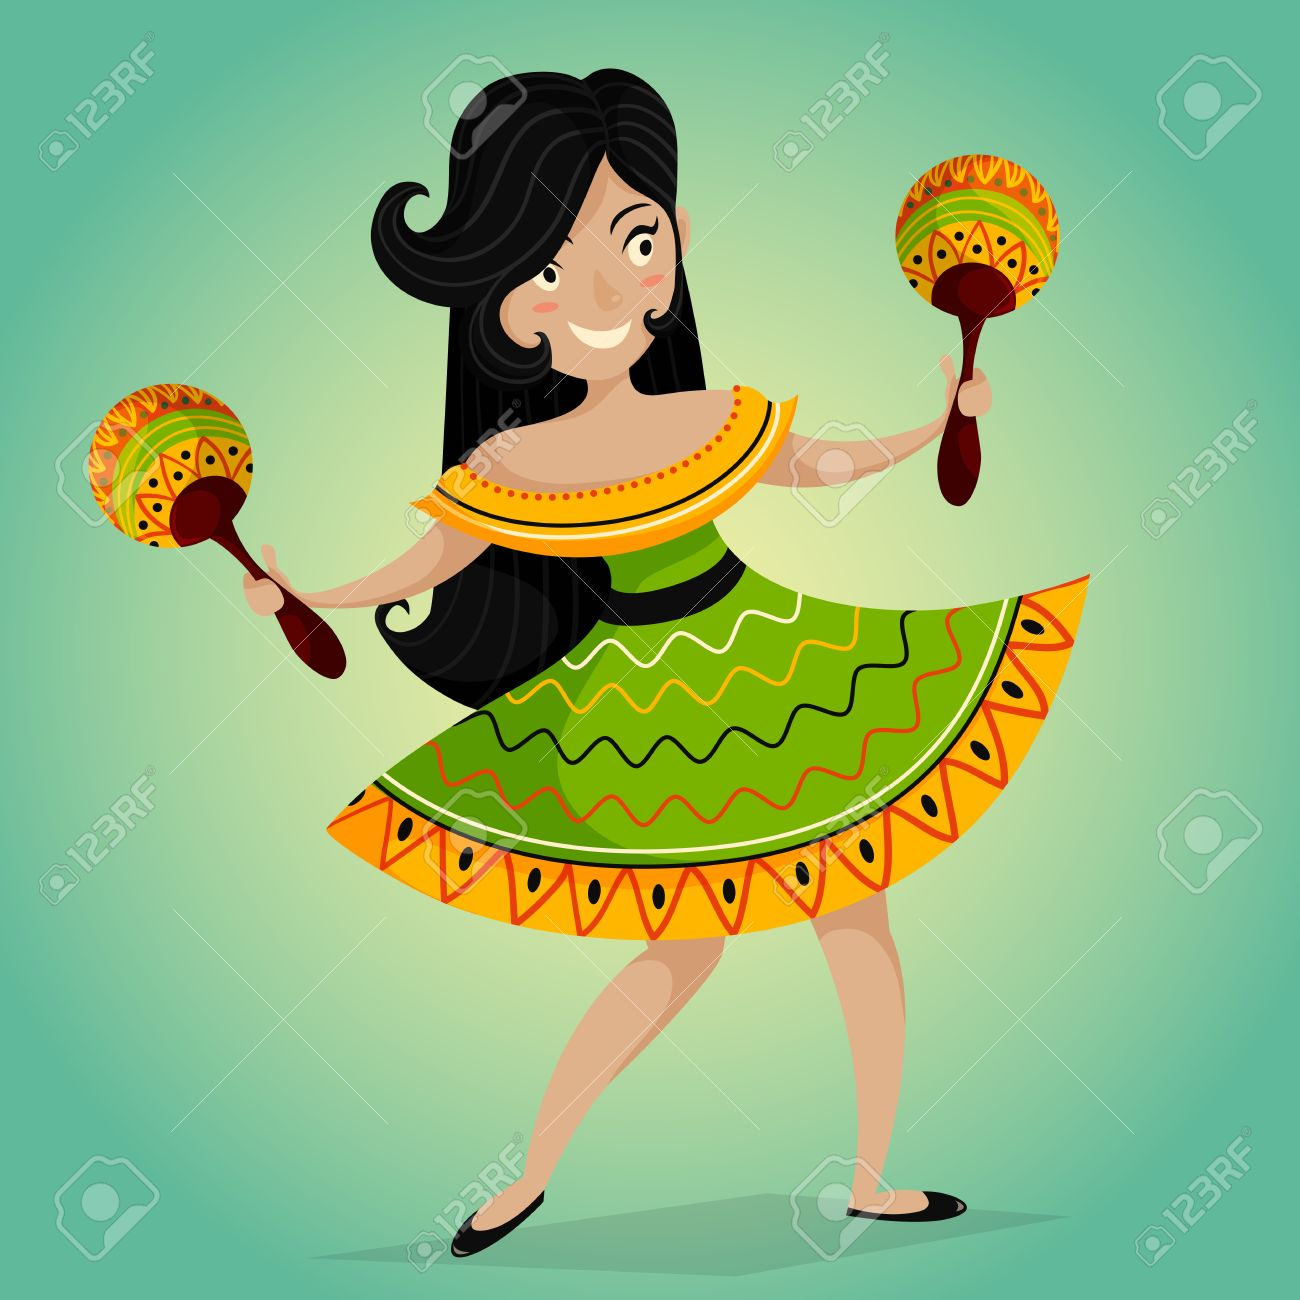 Mexican fiesta party invitation with beautiful mexican woman mexican fiesta party invitation with beautiful mexican woman dancing with maracasctor illustration poster stopboris Images